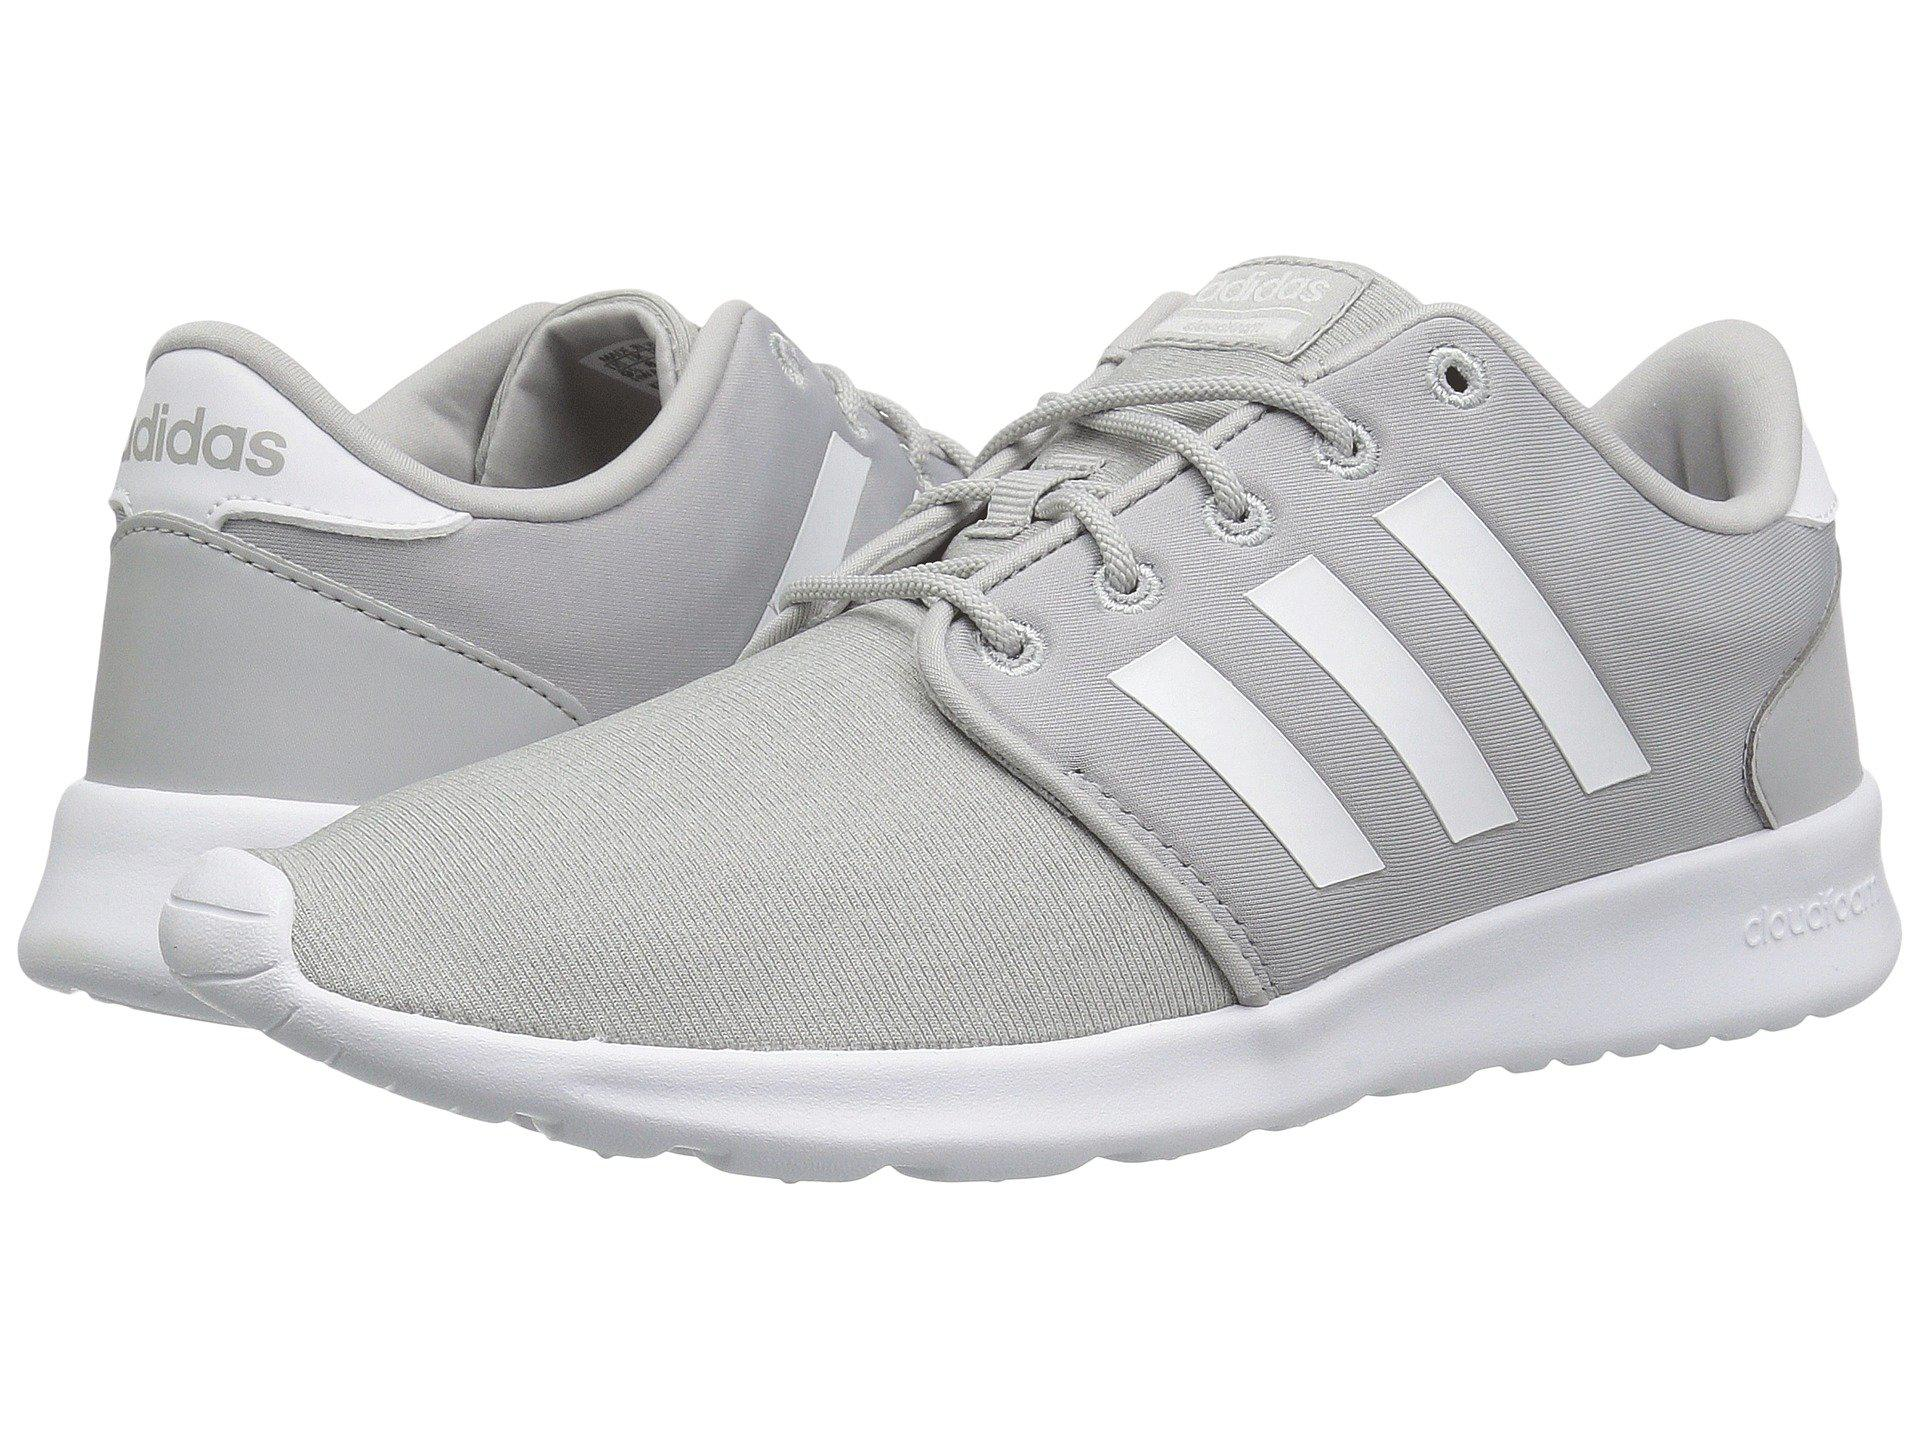 53670a63ad3 Lyst - adidas Cloudfoam Qt Racer Shoes in Gray